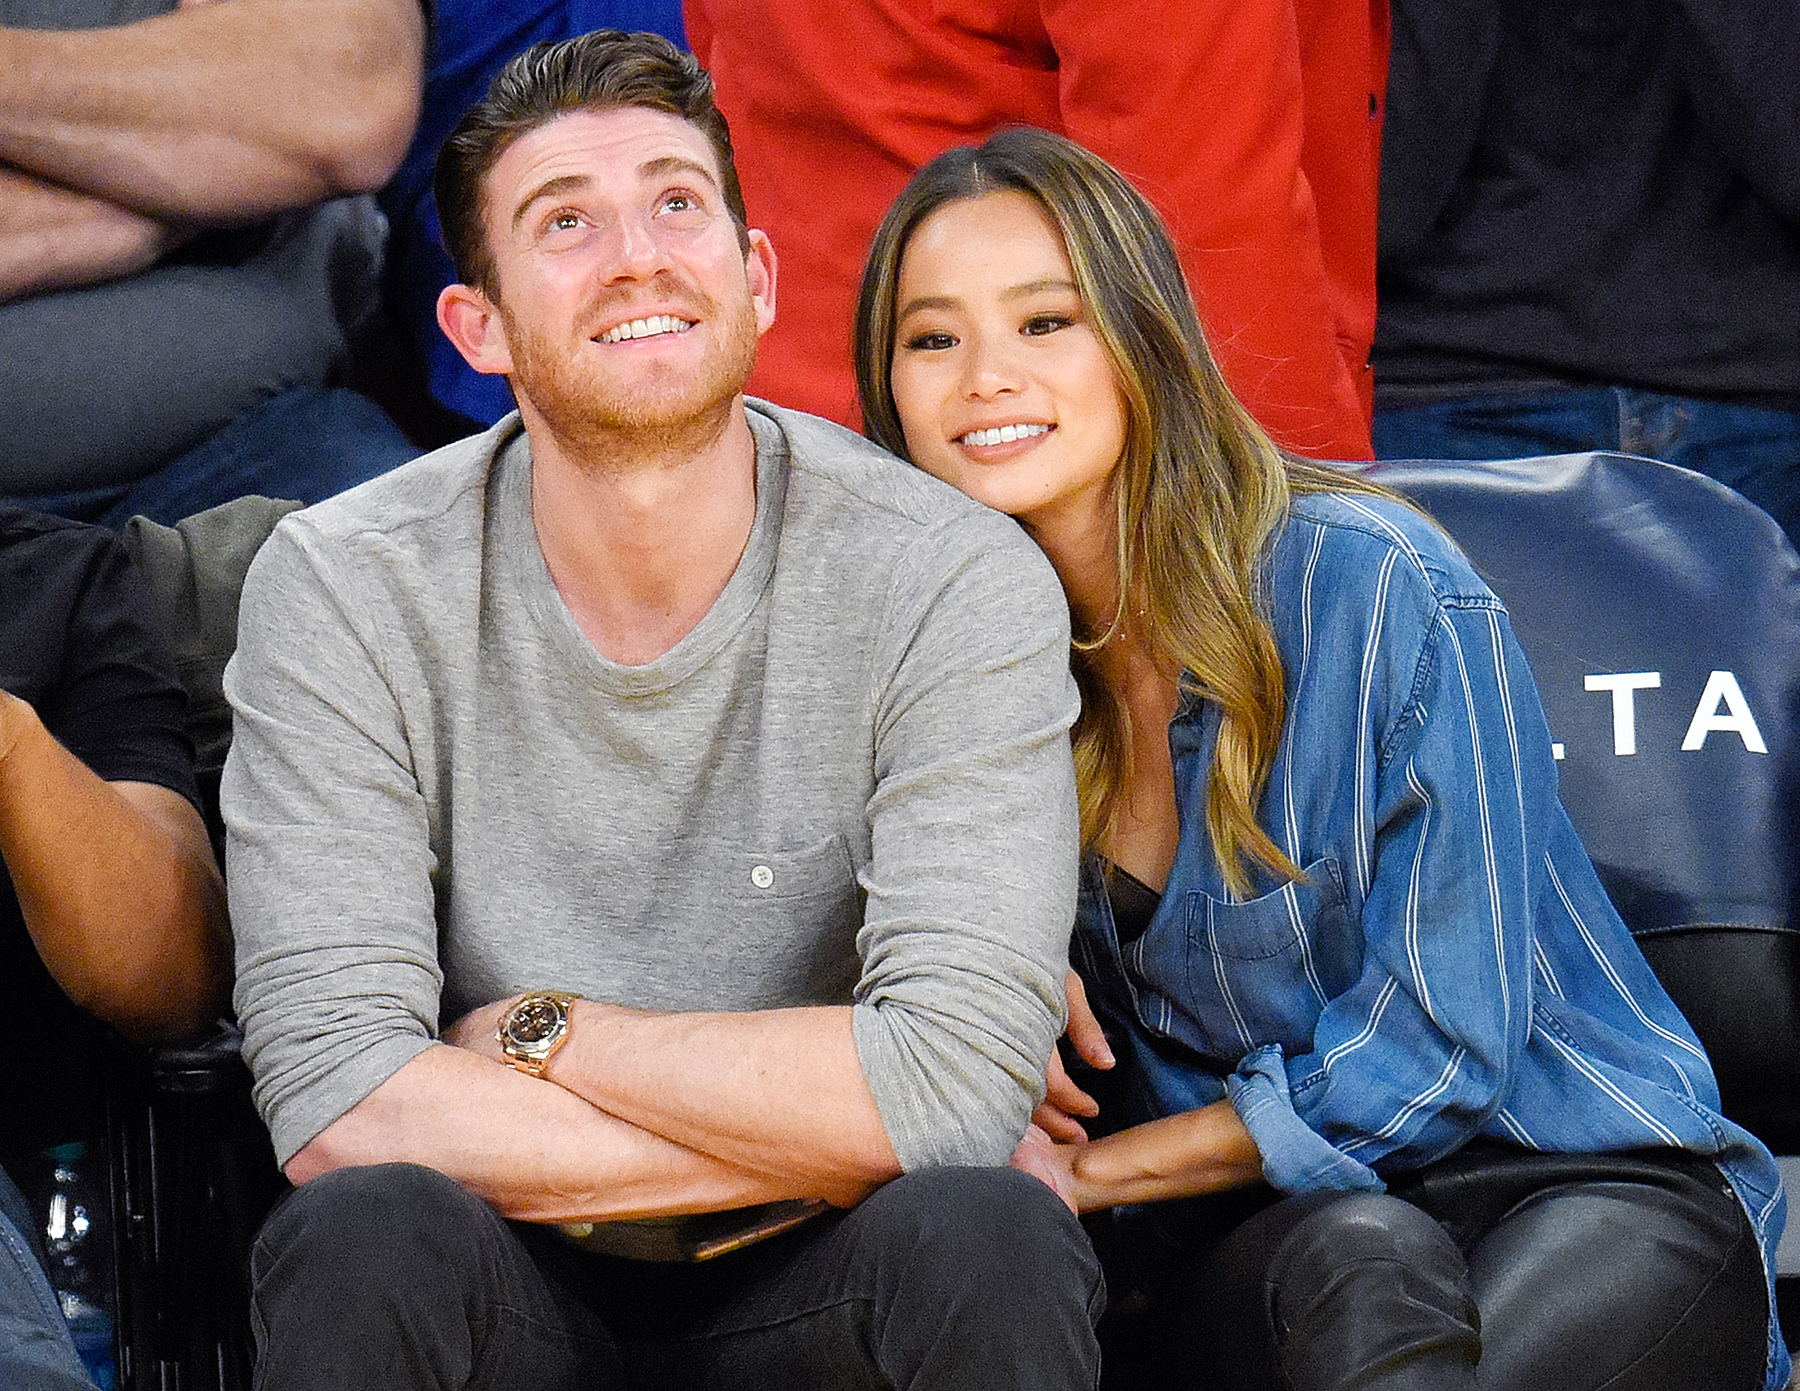 Bryan Greenberg and Jamie Chung attend a basketball game between the New York Knicks and the Los Angeles Lakers at Staples Center on December 11, 2016 in Los Angeles, California.